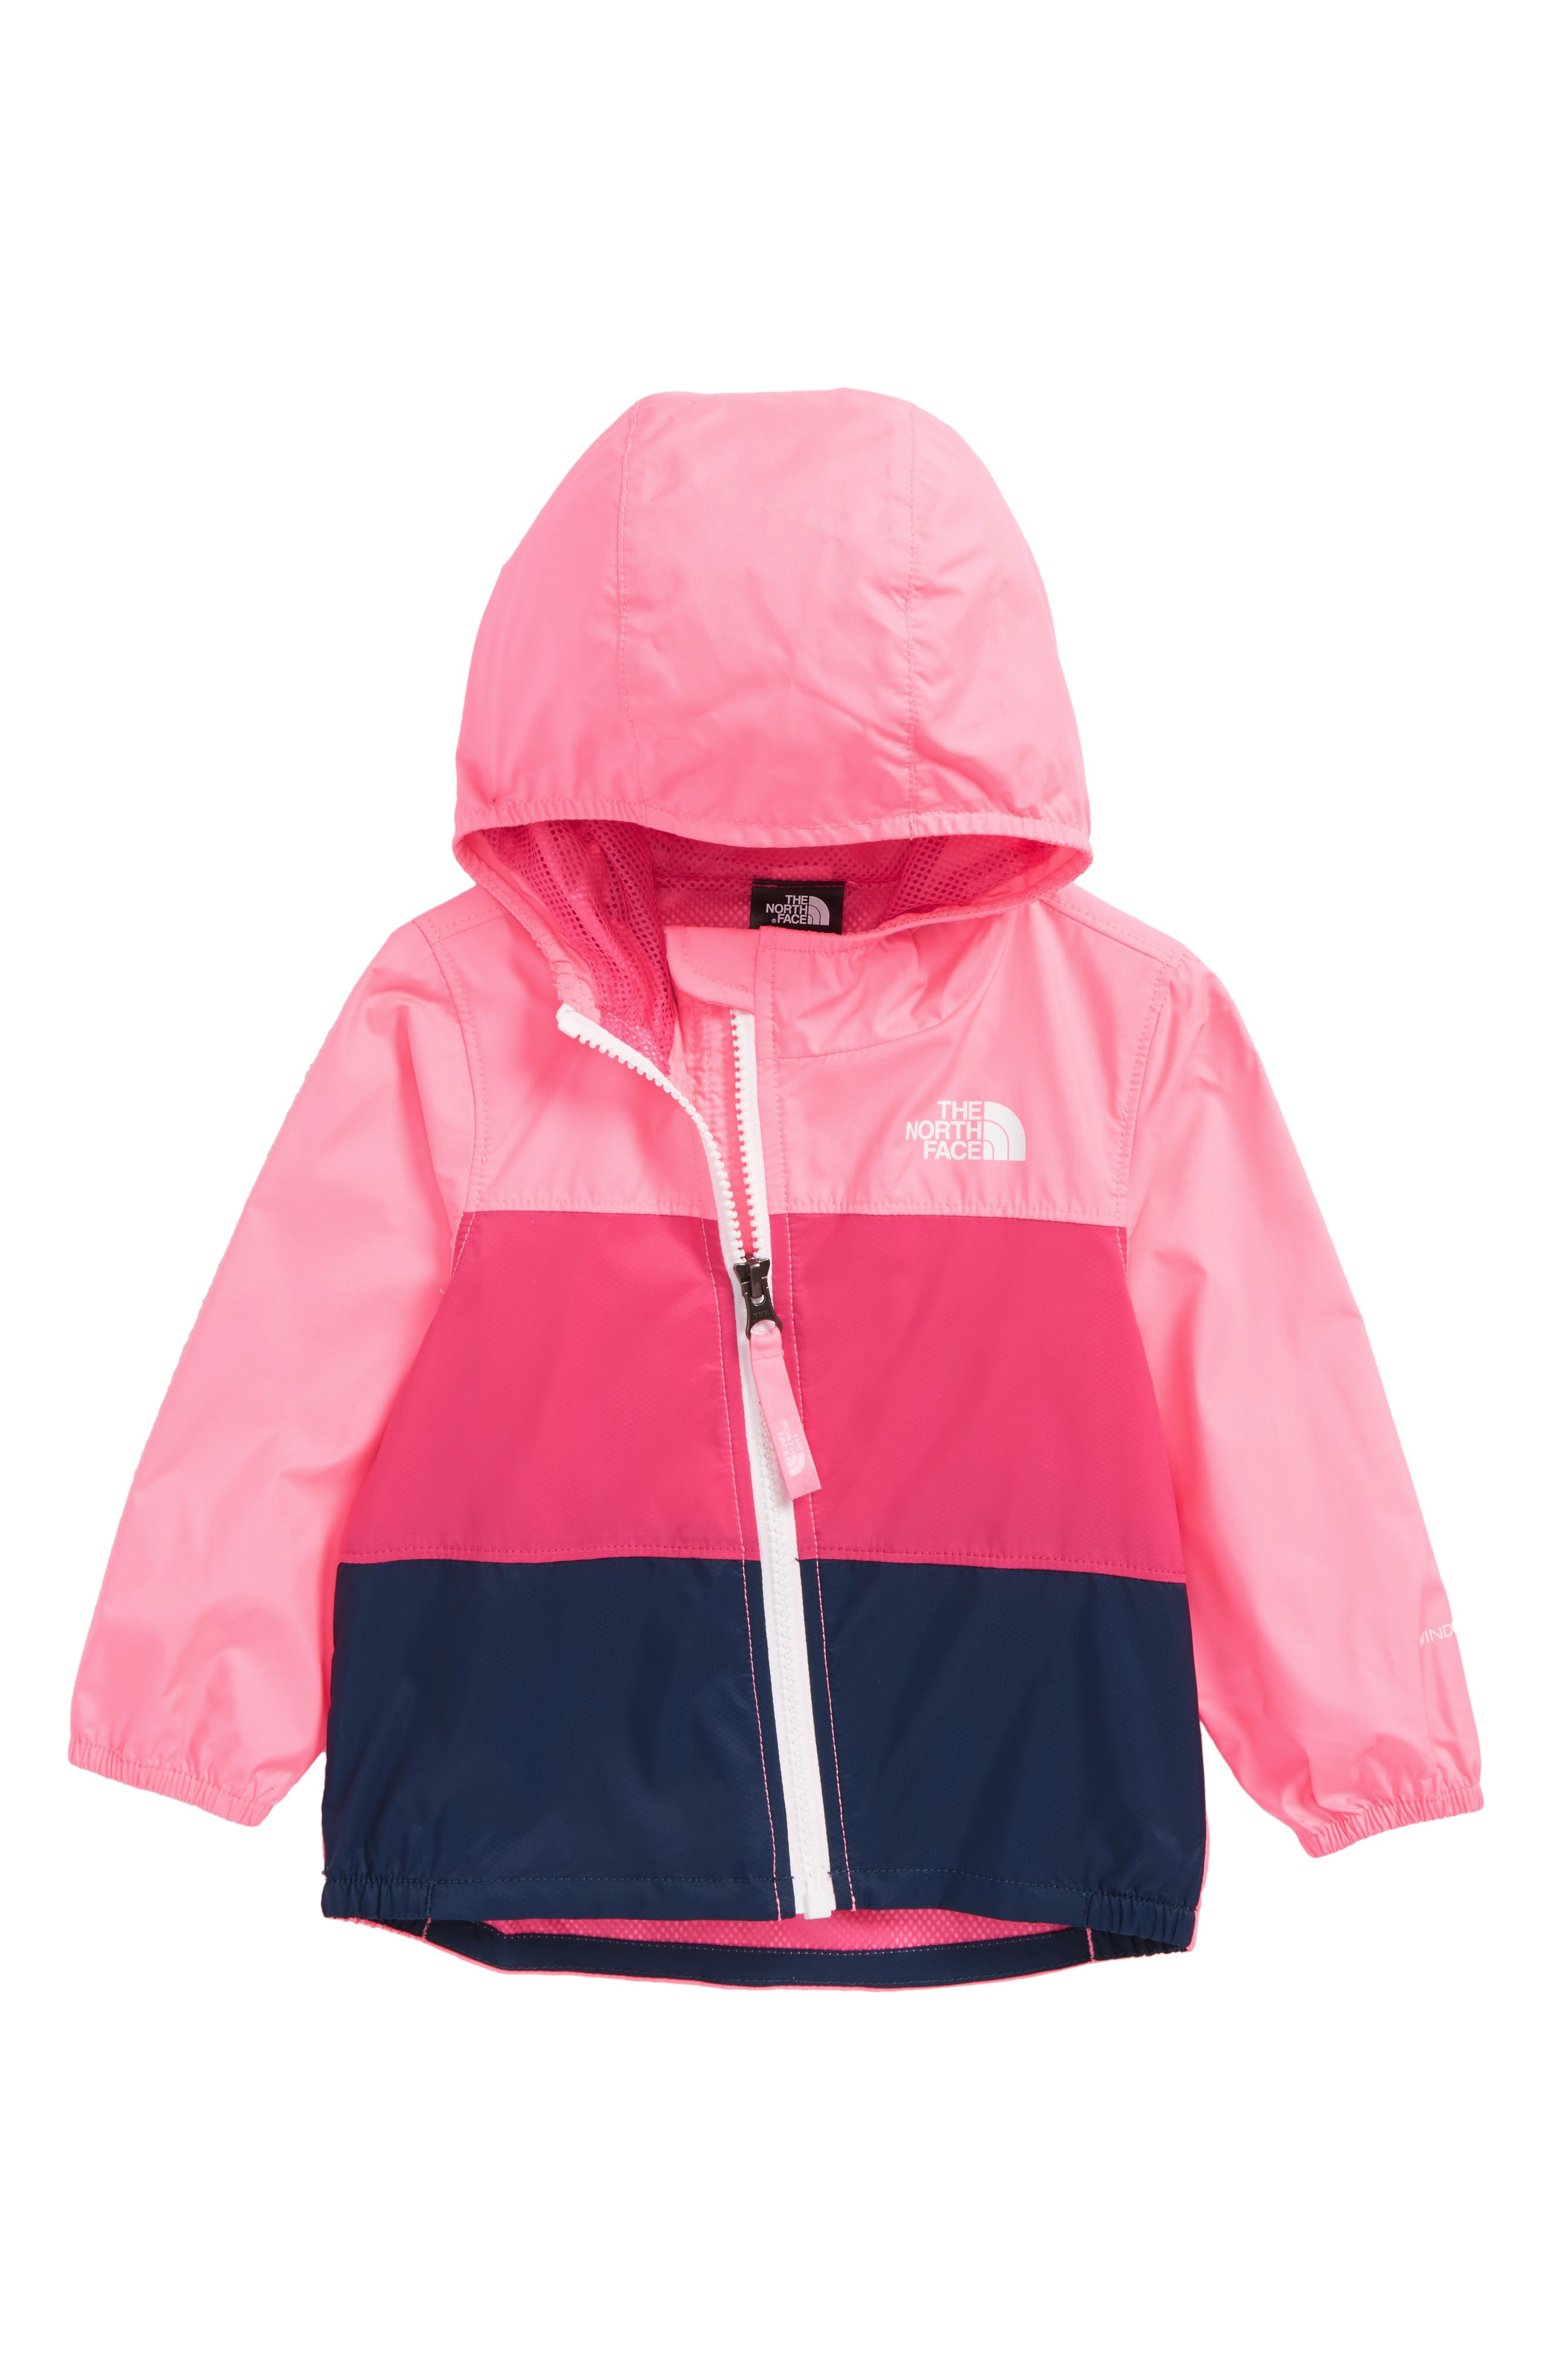 Alternate Image 1 Selected - The North Face Flurry Hooded Windbreaker (Baby Girls)